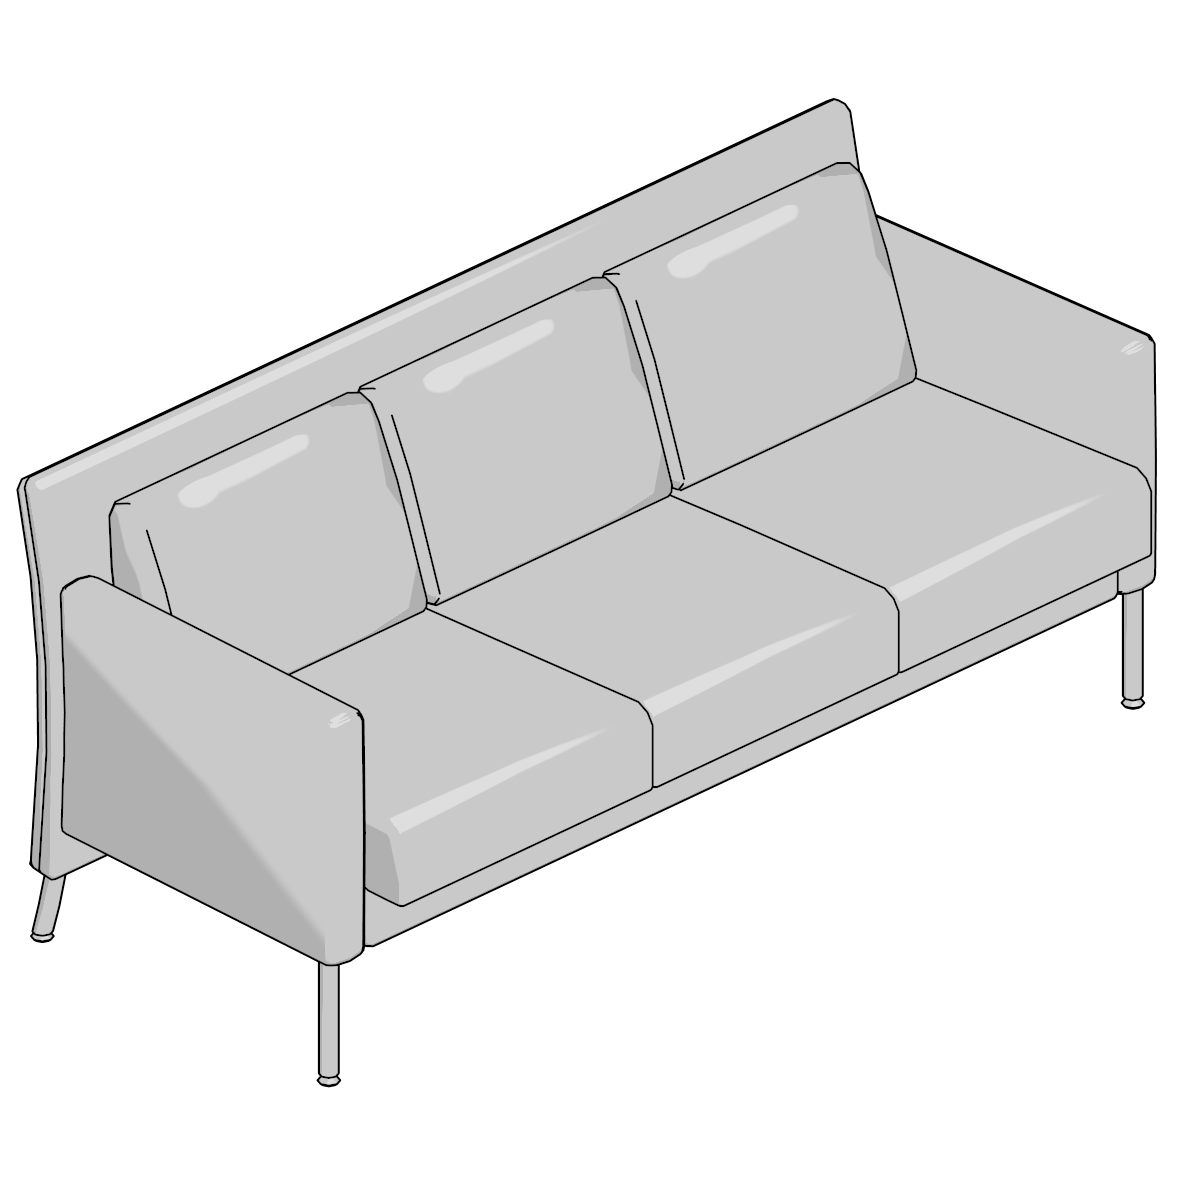 Faszinierend Switch Sofa Dekoration Von Switch;sofa-3 Seat,matte Chrm Legs,ctrst Fab